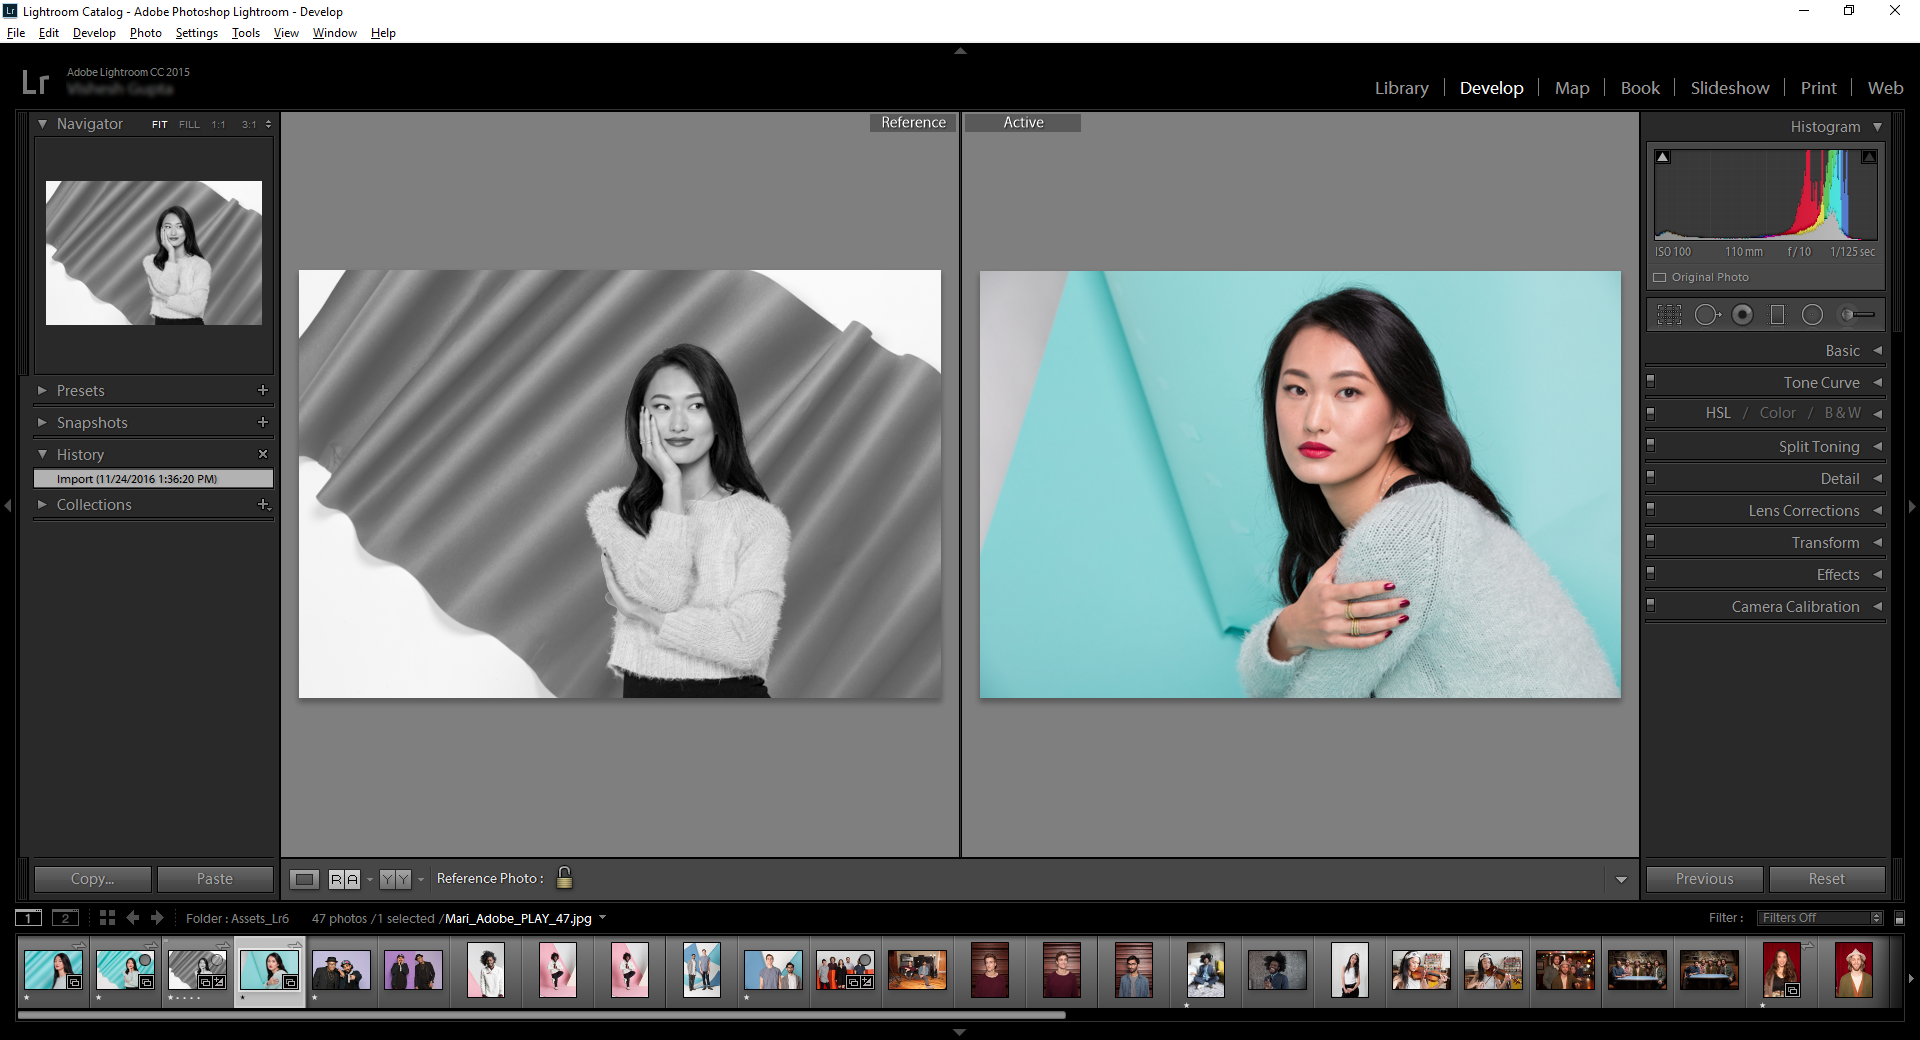 Lightroom reference view